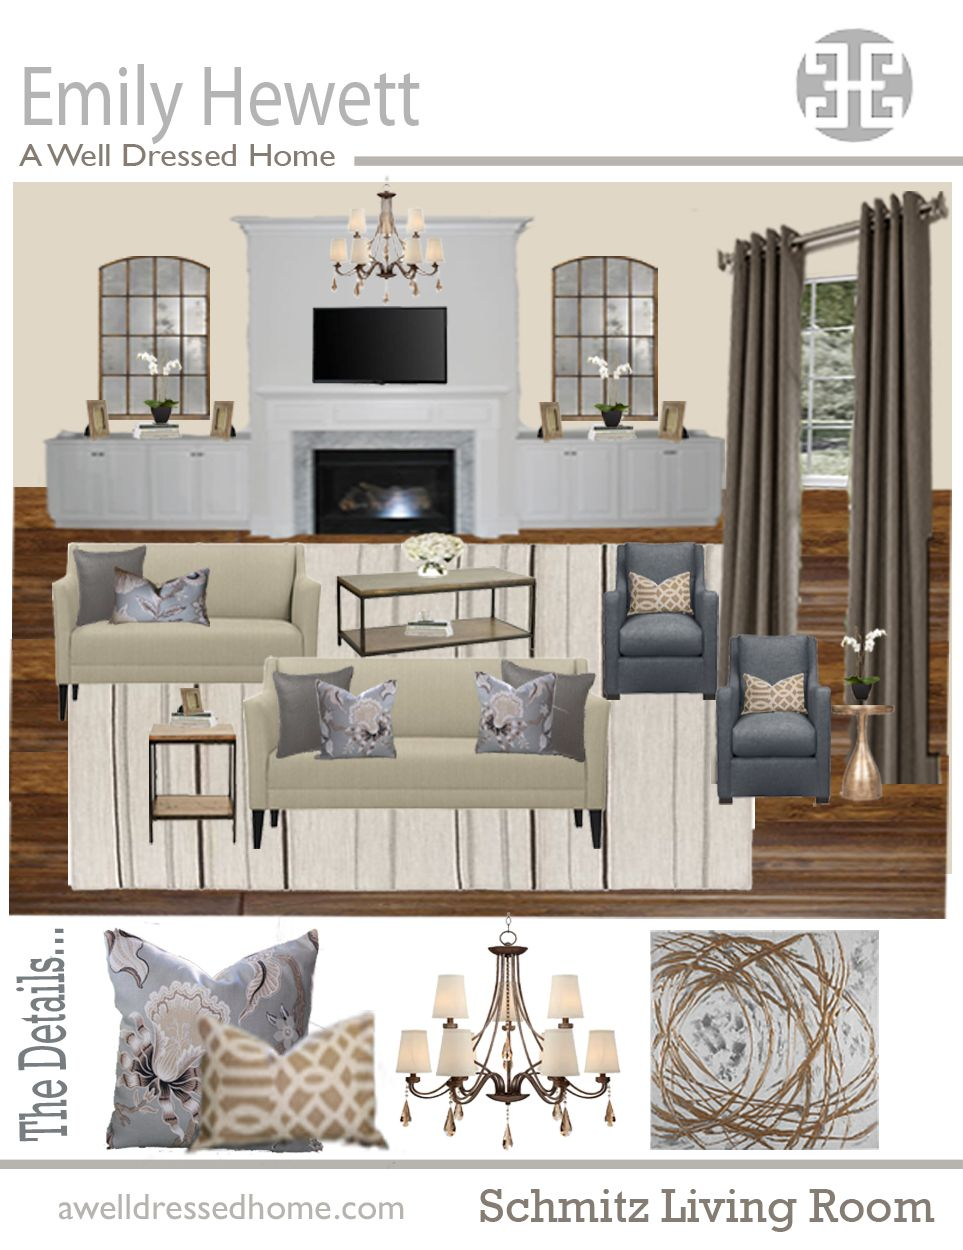 Schmitz Living Room Online Design Board | For the Home | Pinterest ...